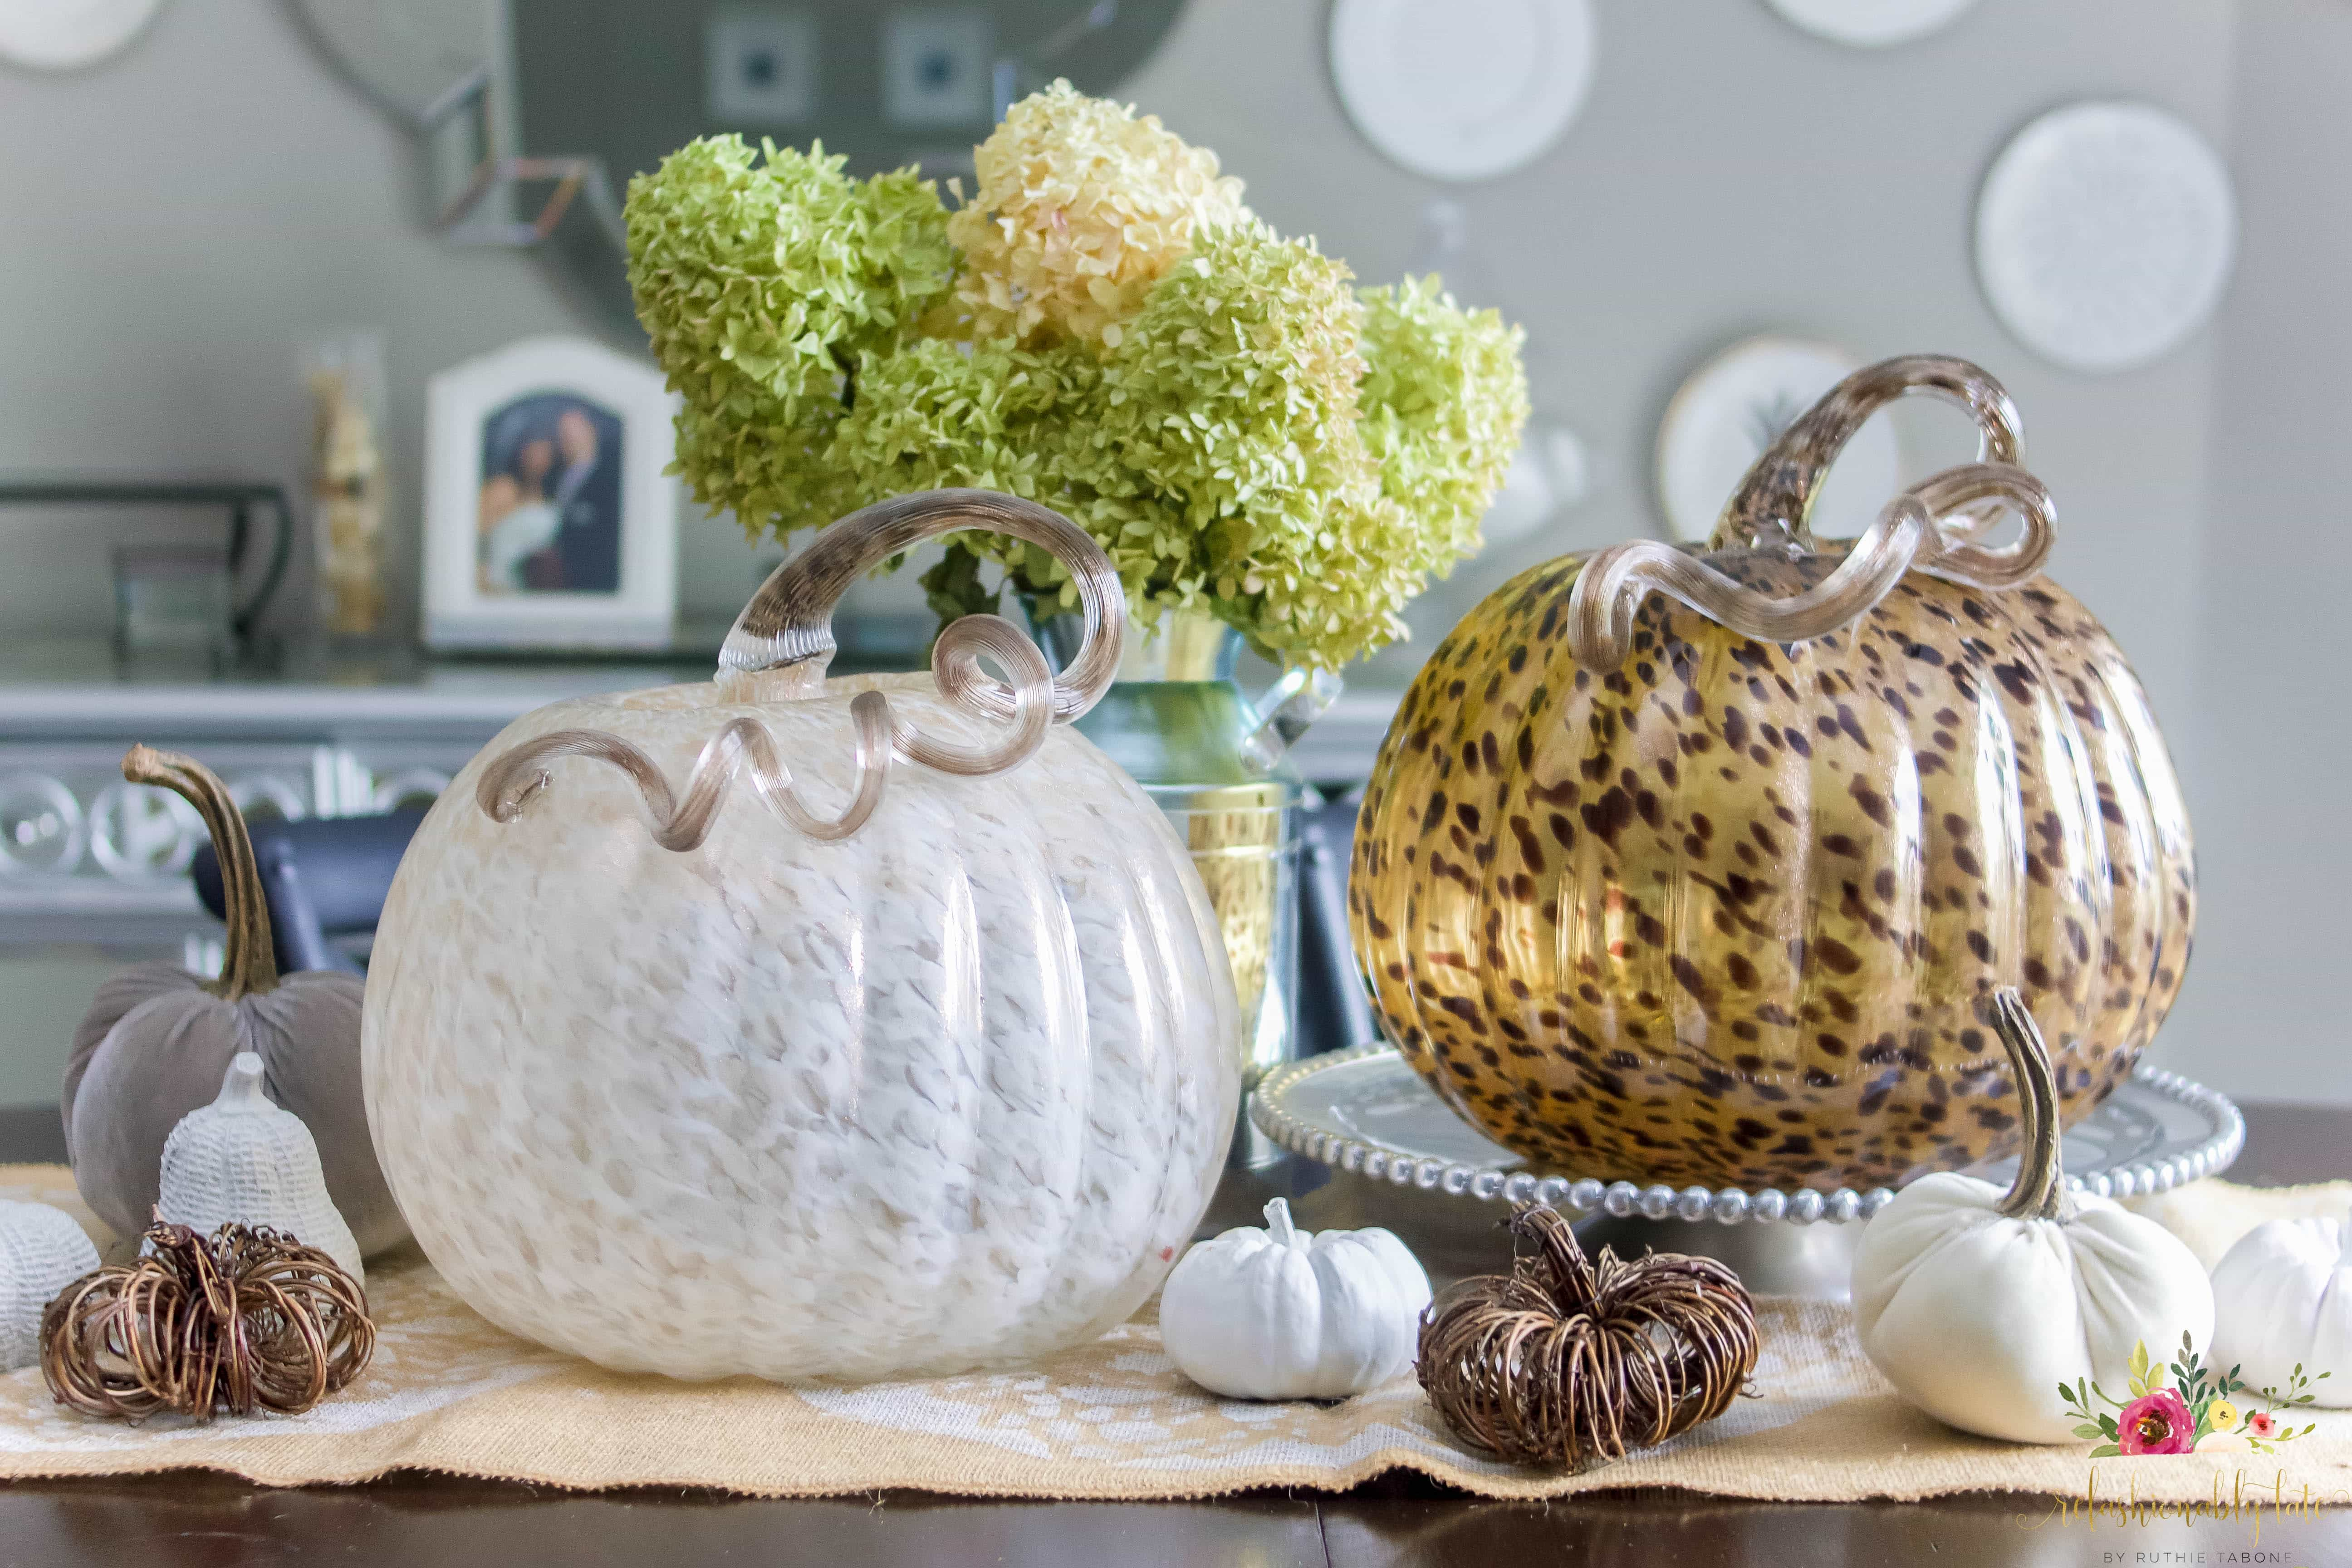 Quick and Simple Fall Centerpiece - www.refashionablylate.com